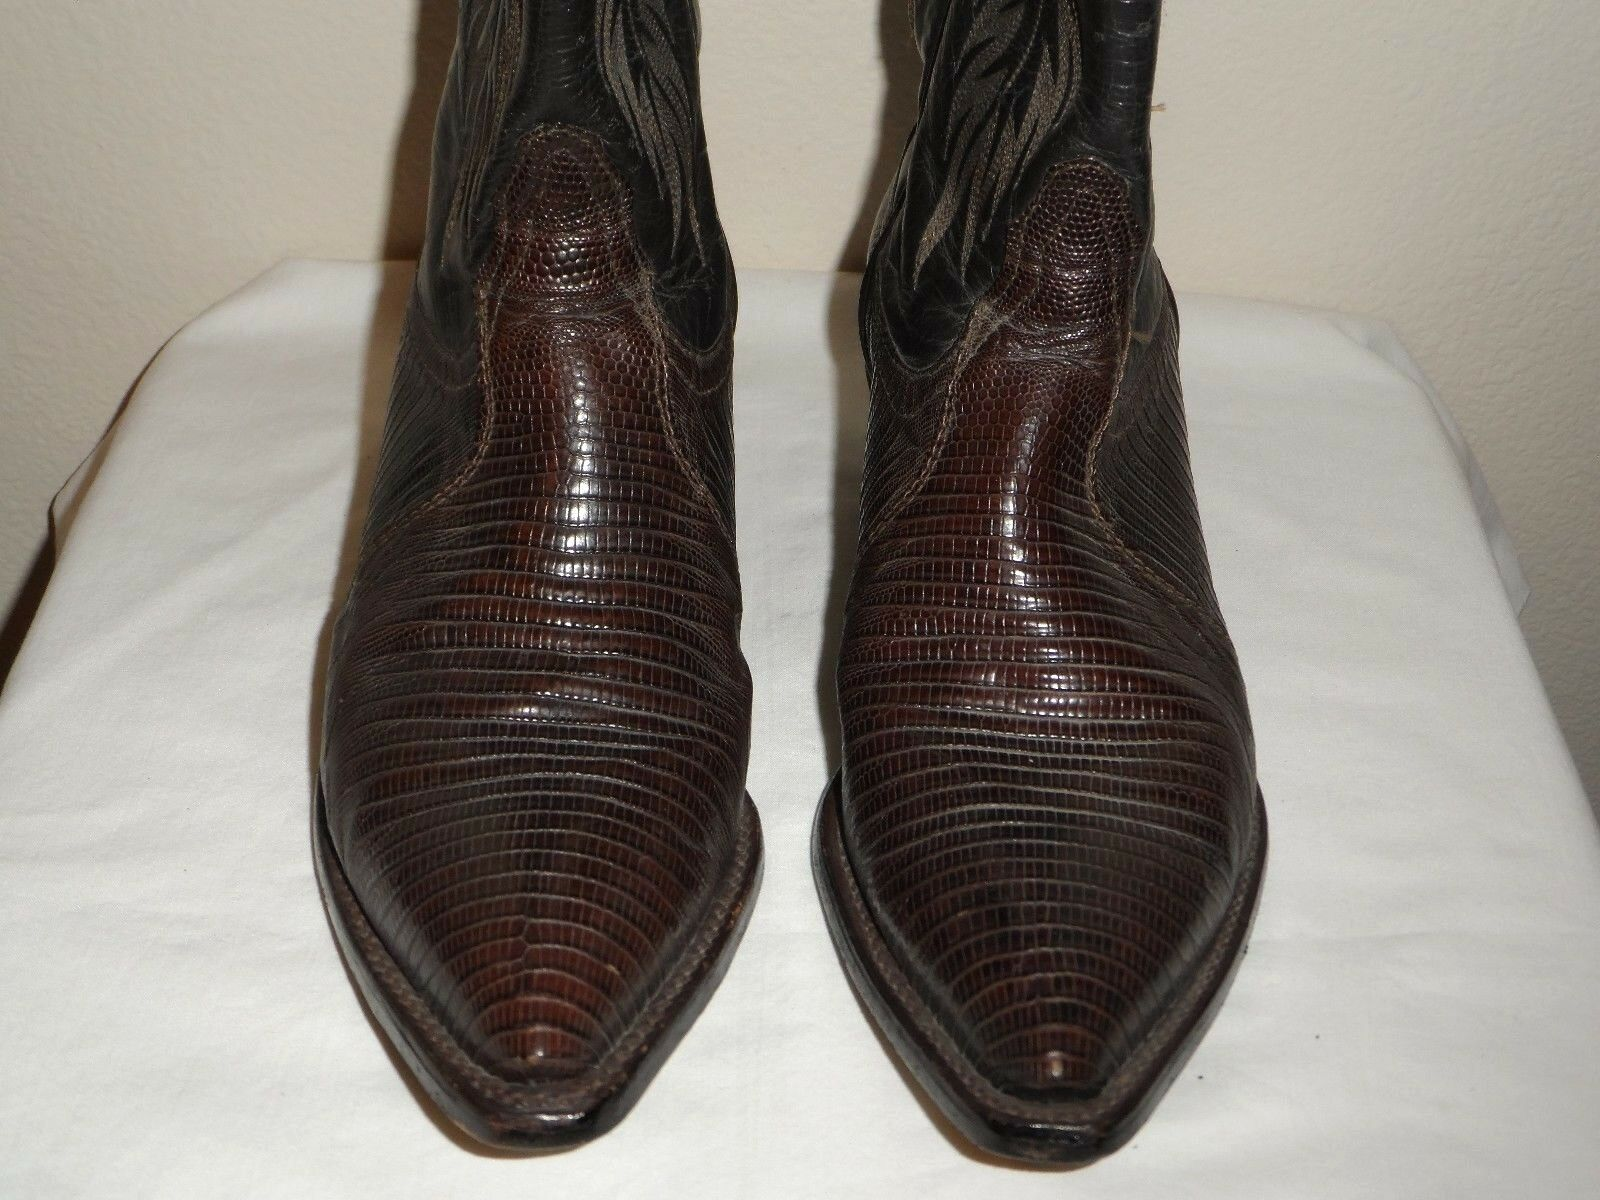 Tony Lama Womens Brown Snake Leather Western Cowboy Boot - Size 6.5M